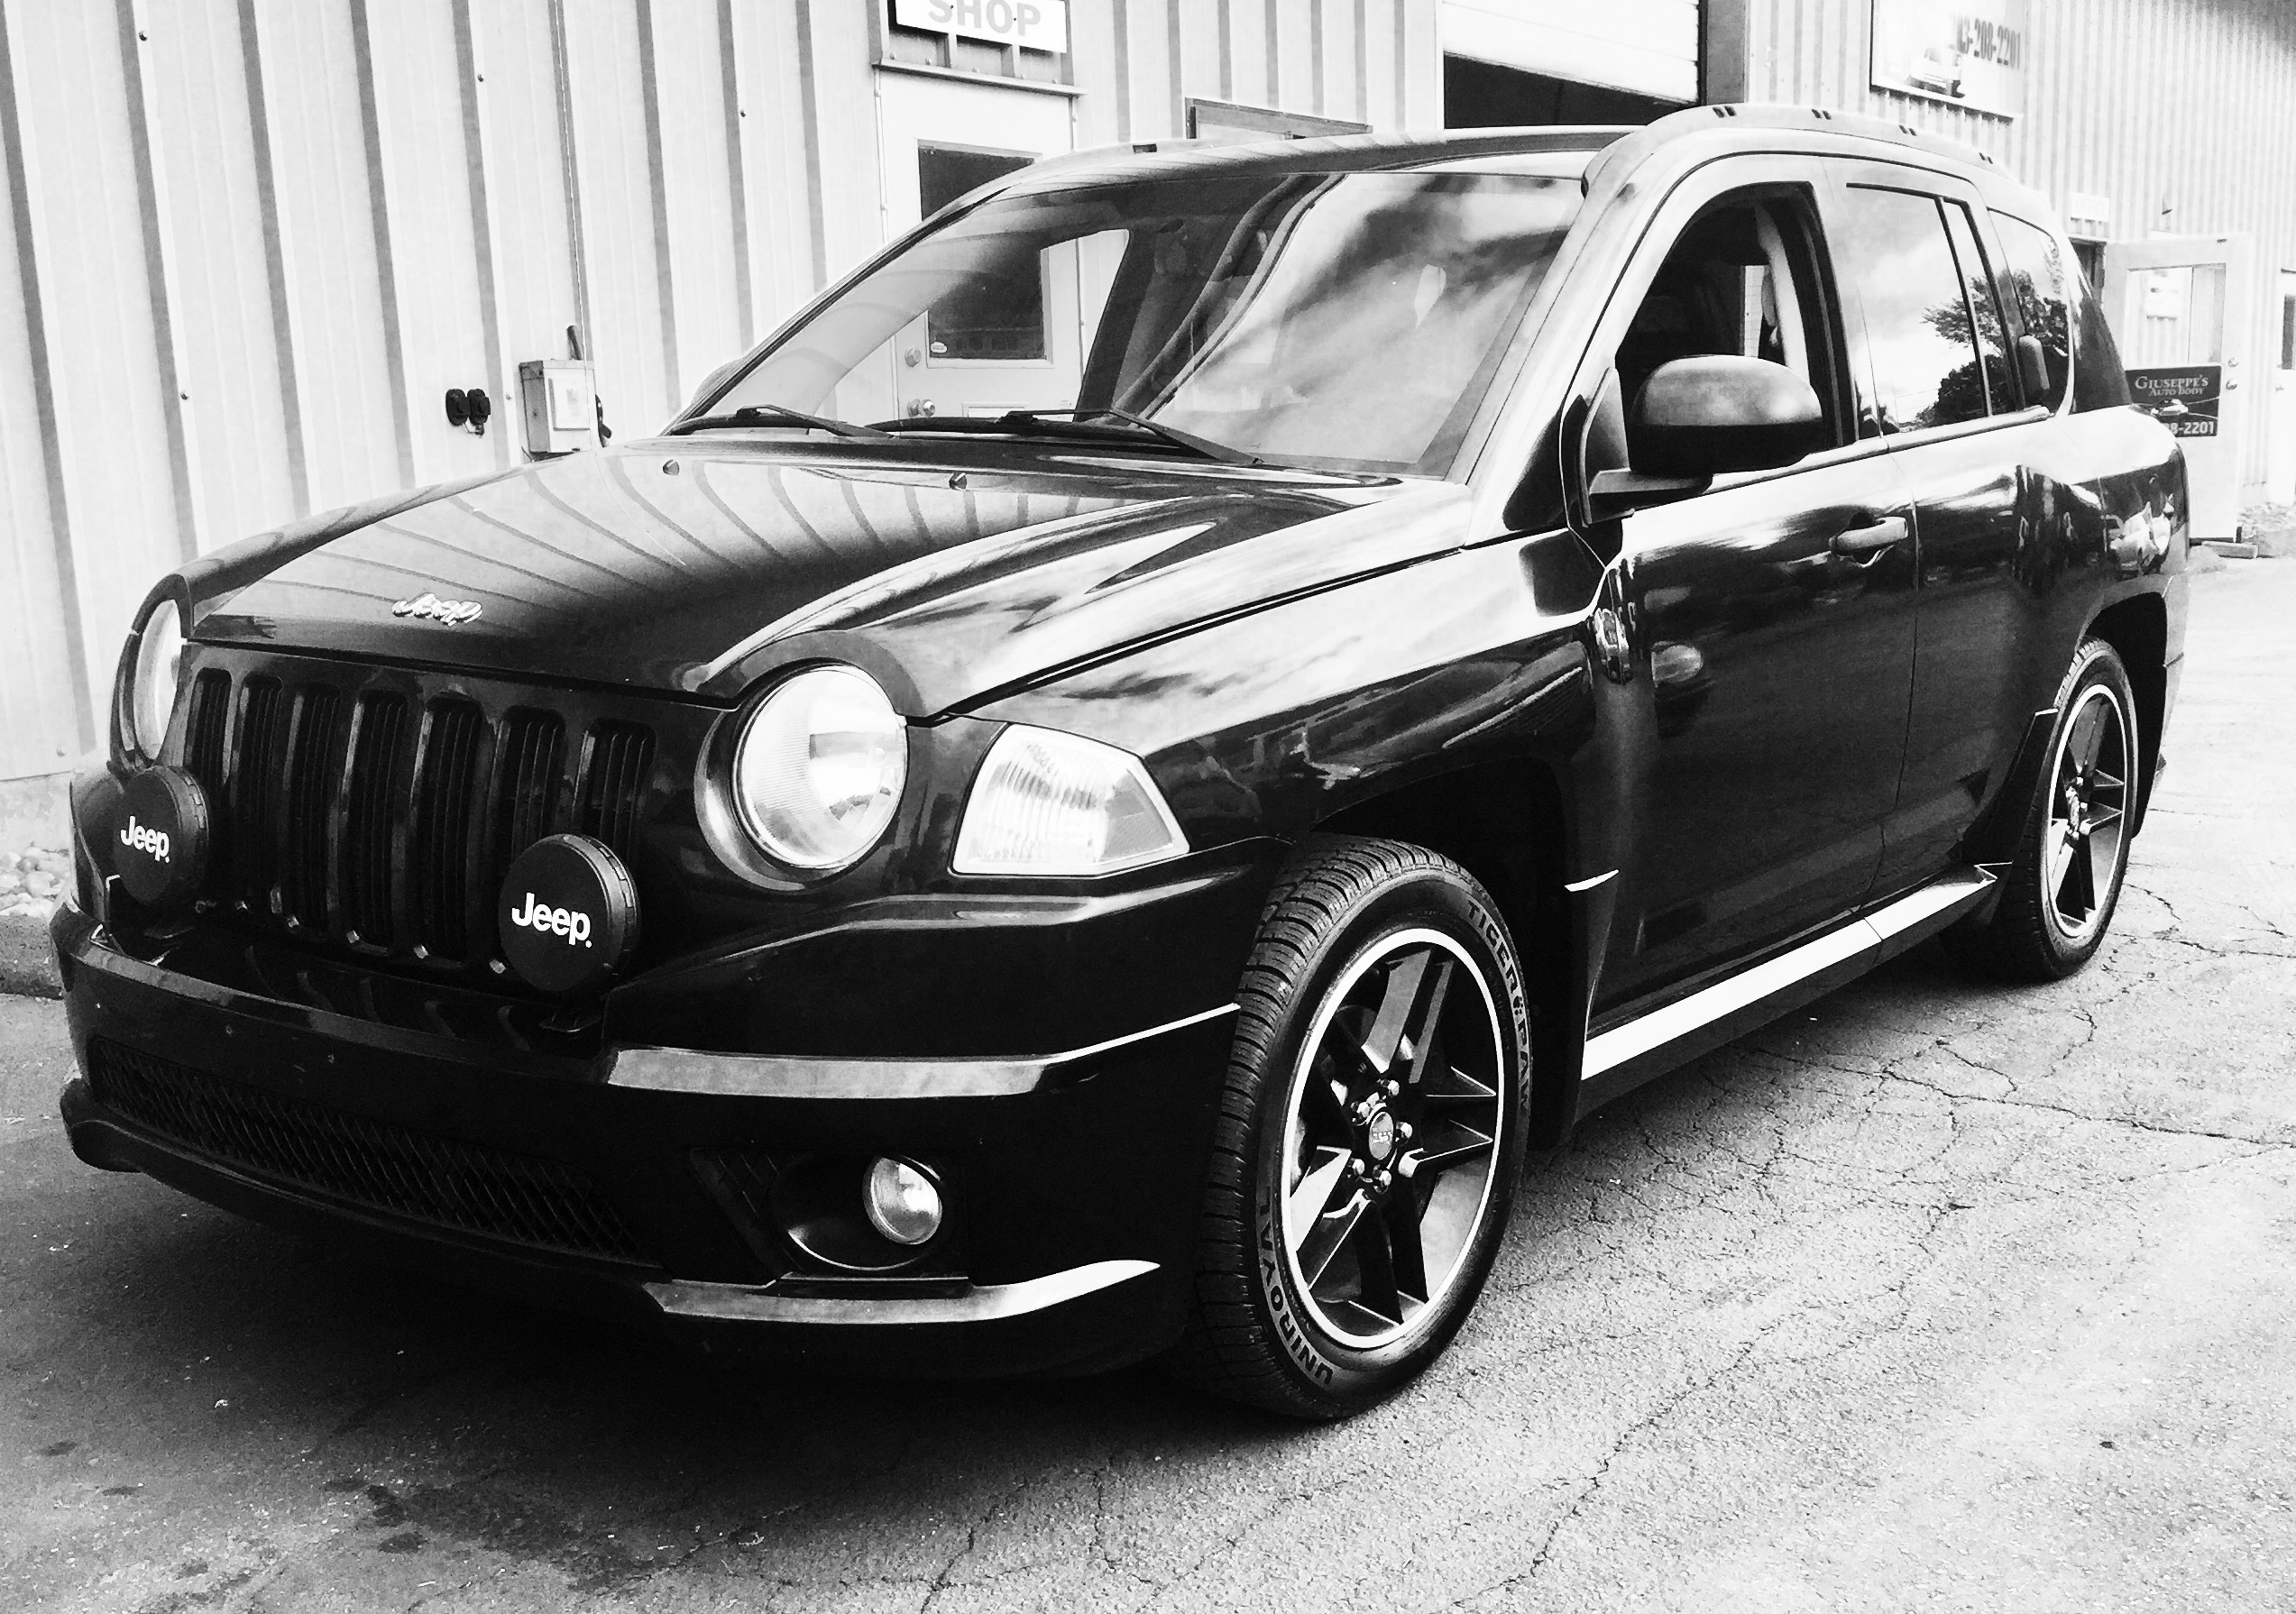 2009 Jeep pass Rallye Edition